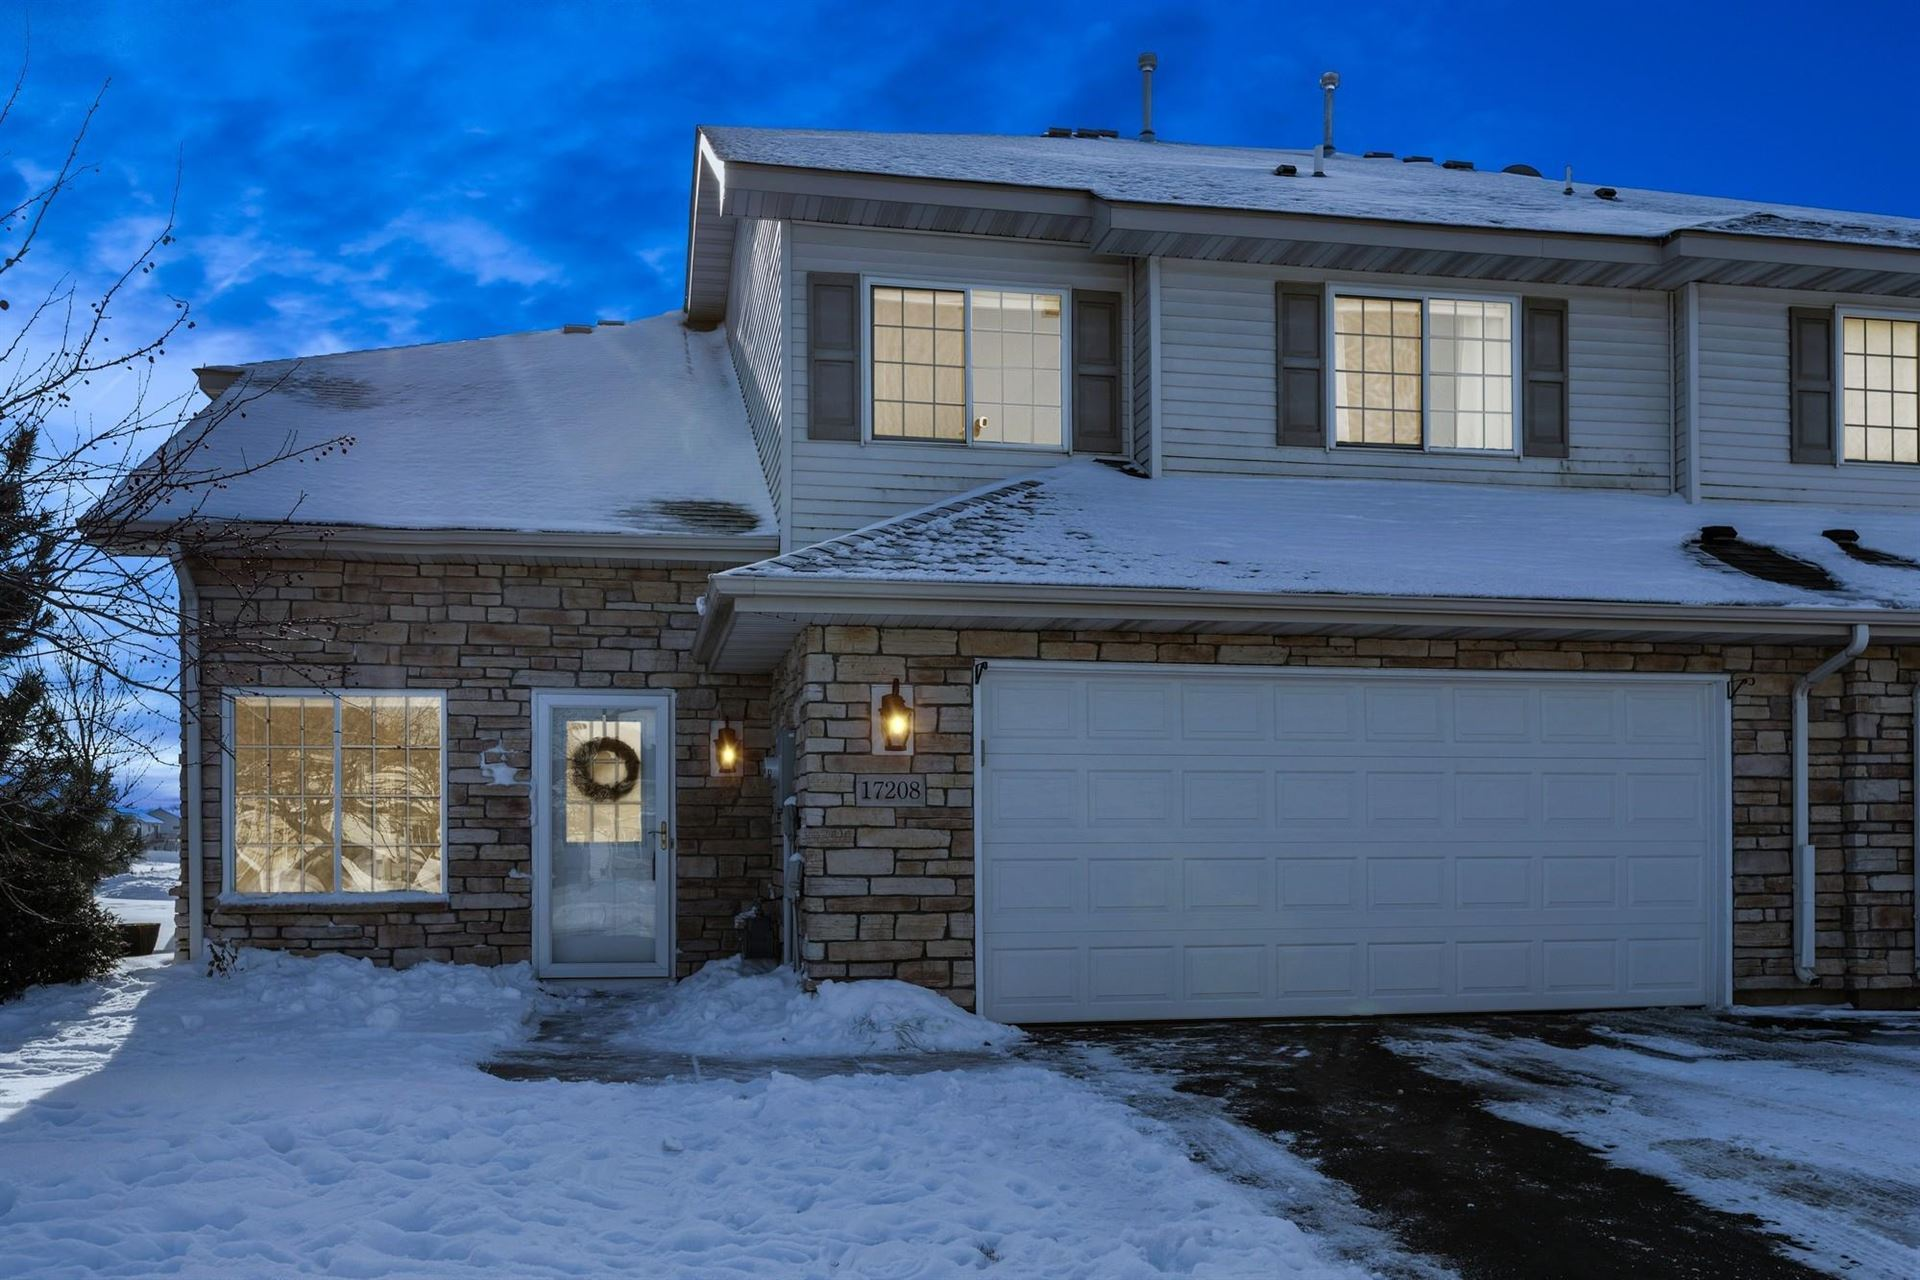 Photo of 17208 Eastwood Avenue #190, Lakeville, MN 55024 (MLS # 5698668)